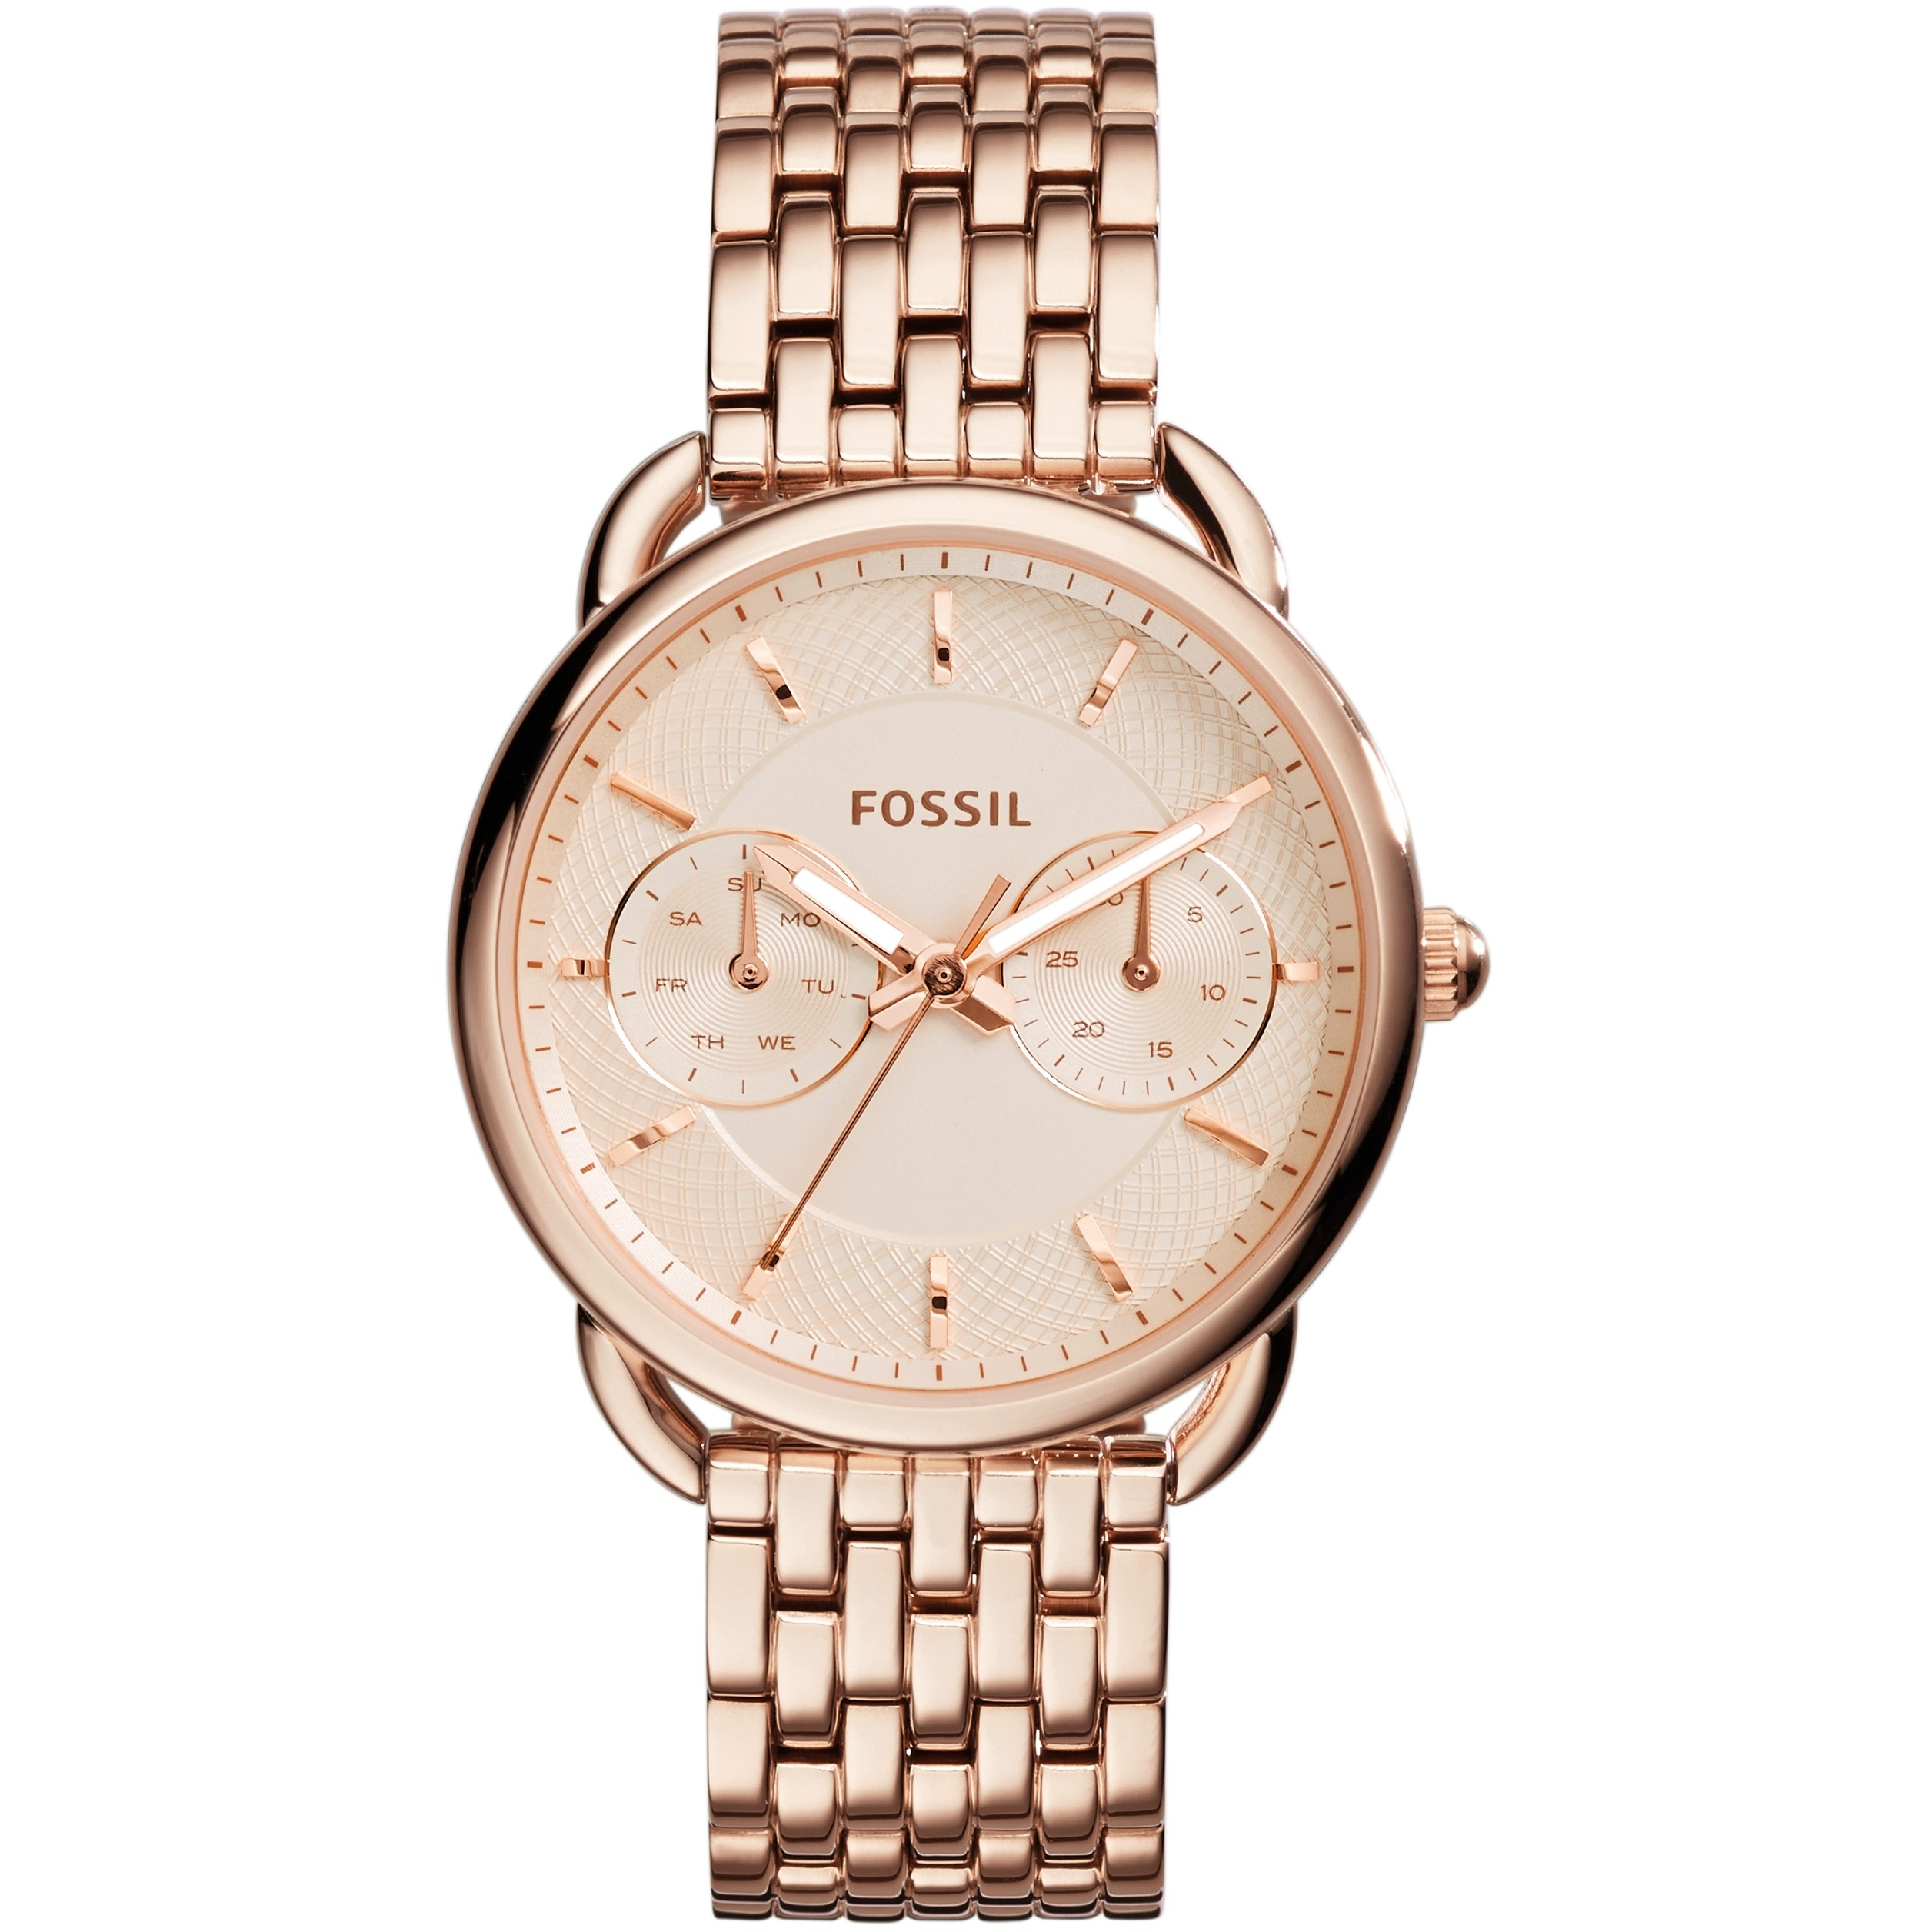 Fossil Women's Rose Gold Tailor Multi-Function Steel Watch ES3713